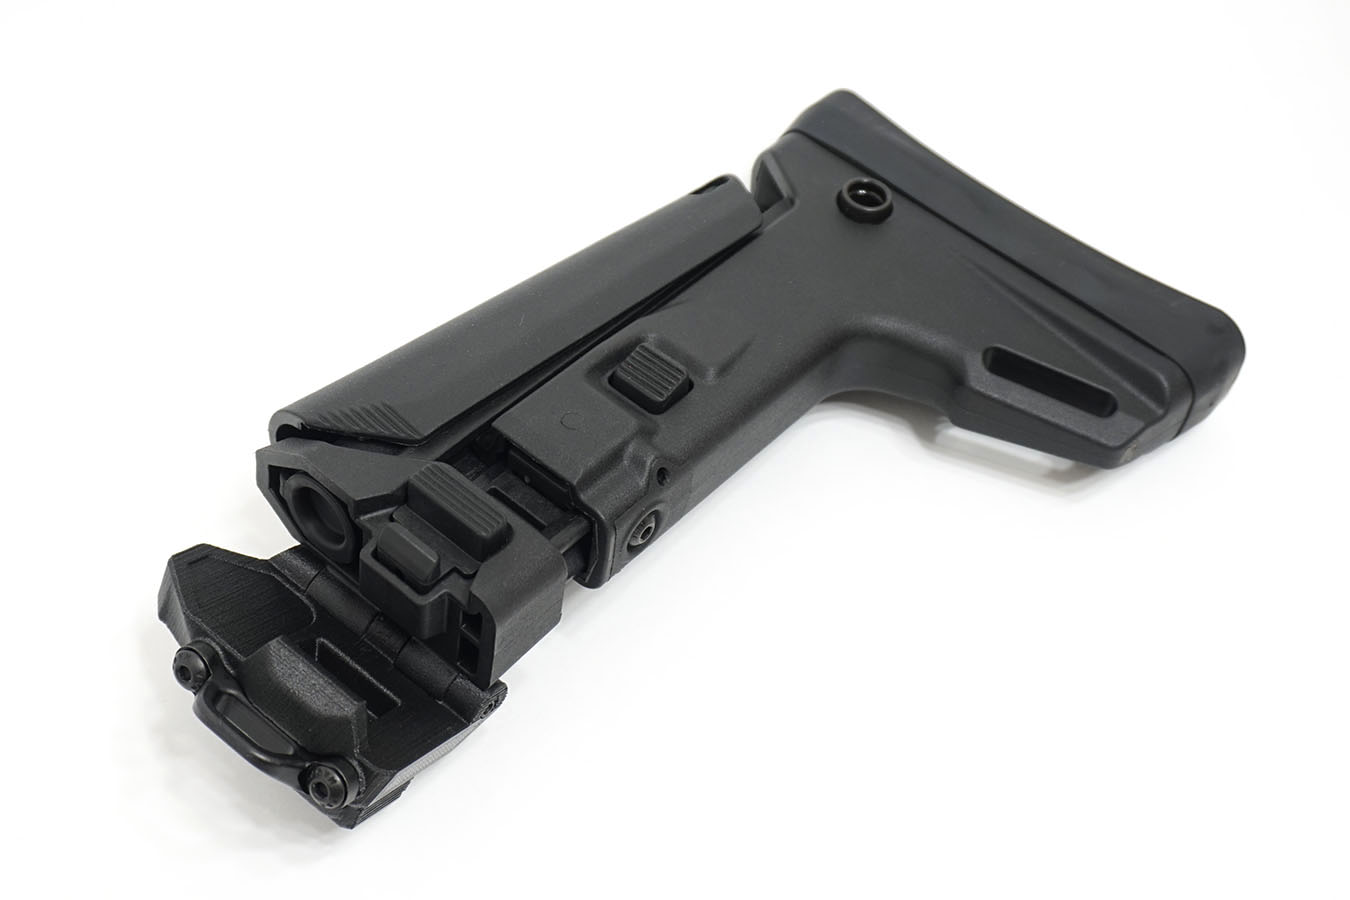 Acr Stock Adapter For Swiss Armssig Sg550 Series Rifles Gsdesignsca